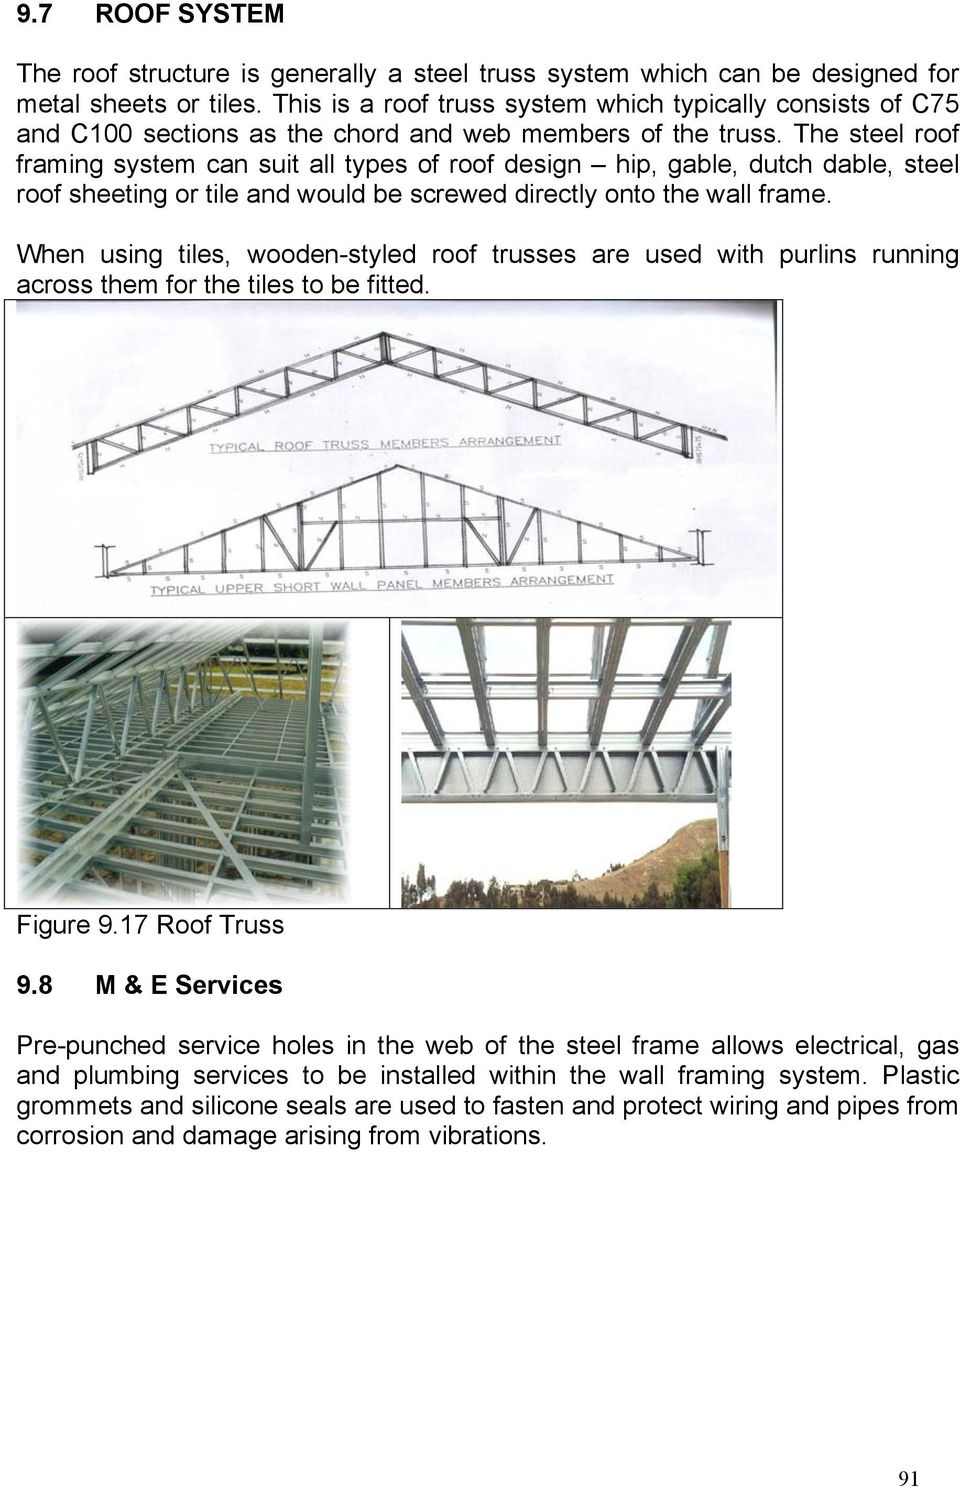 The steel roof framing system can suit all types of roof design hip, gable, dutch dable, steel roof sheeting or tile and would be screwed directly onto the wall frame.